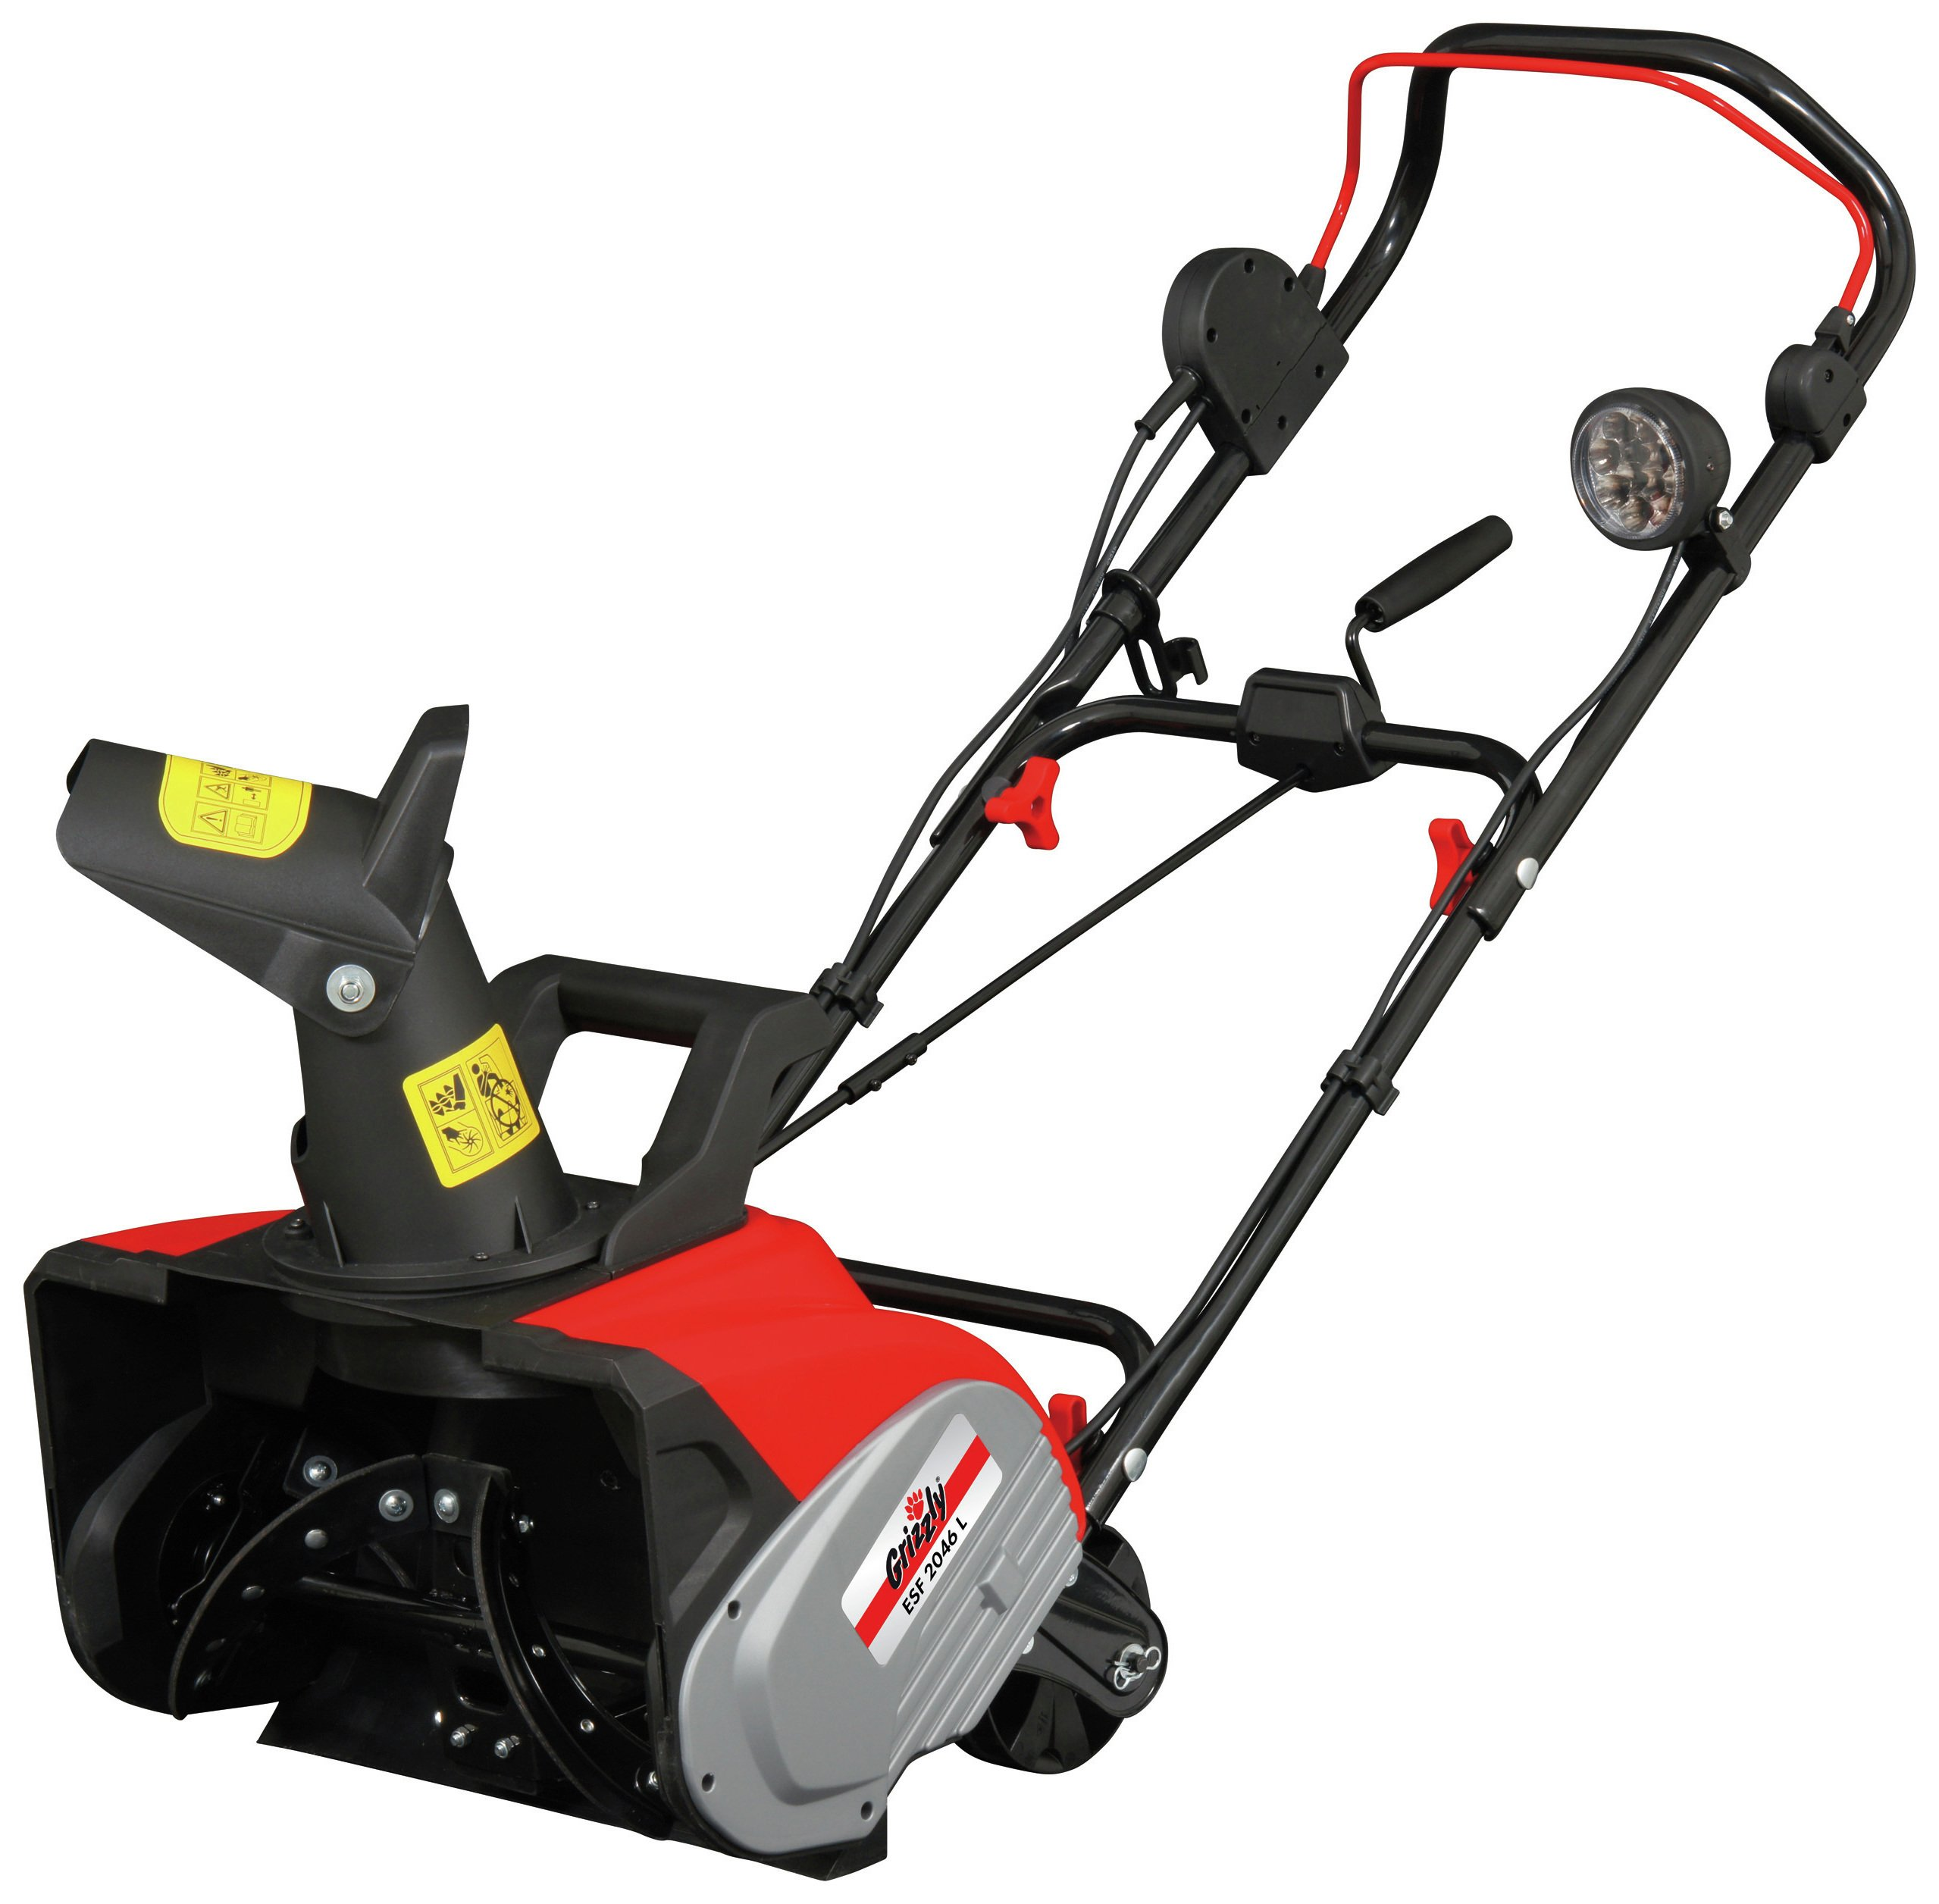 Grizzly Tools 2000W Snow Blower.